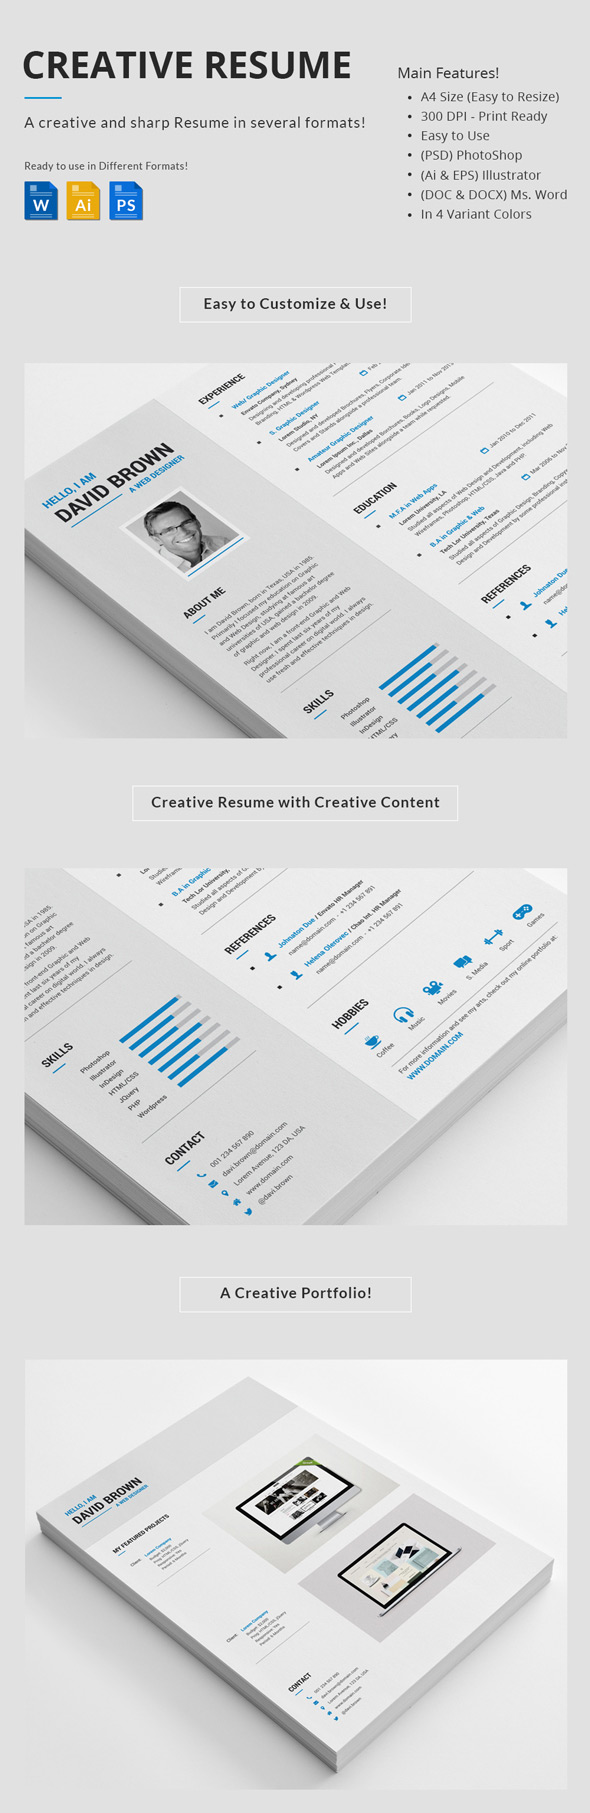 Professional Creative Resume Set